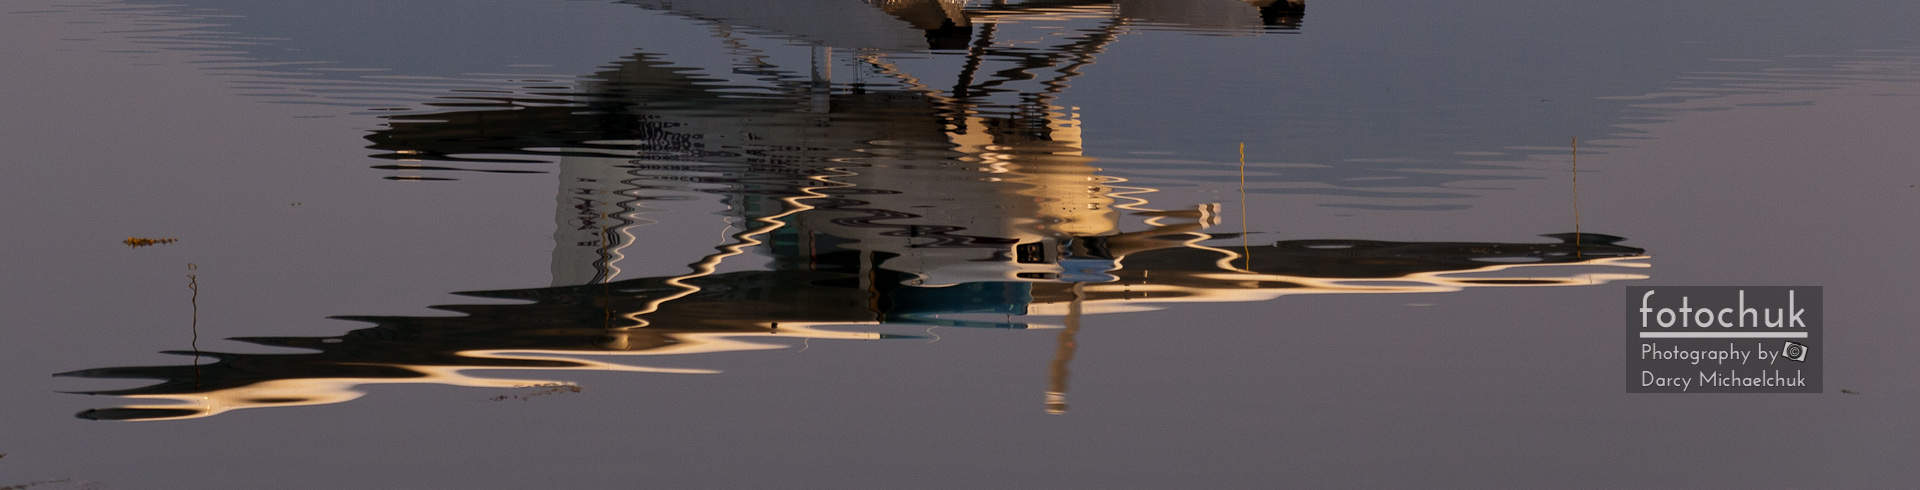 Float Plane Reflection